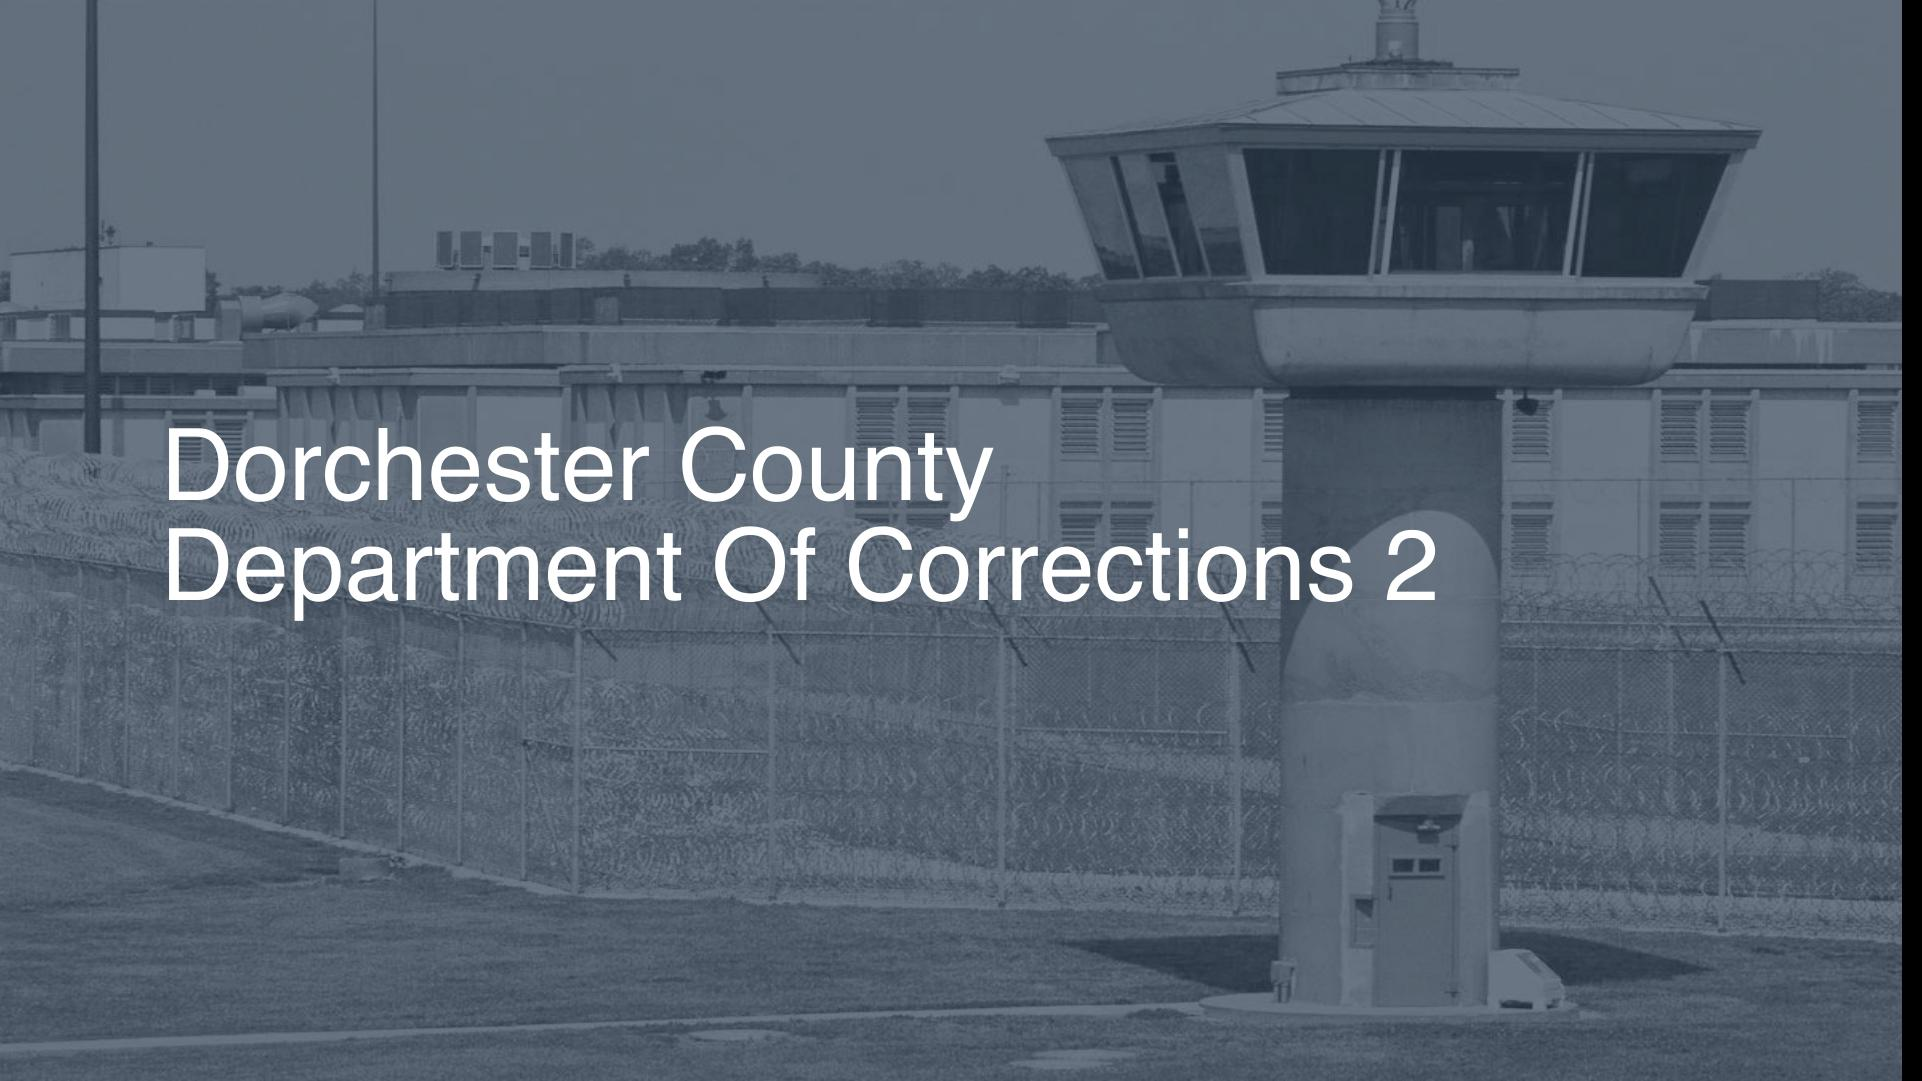 Dorchester County Department of Corrections | Pigeonly